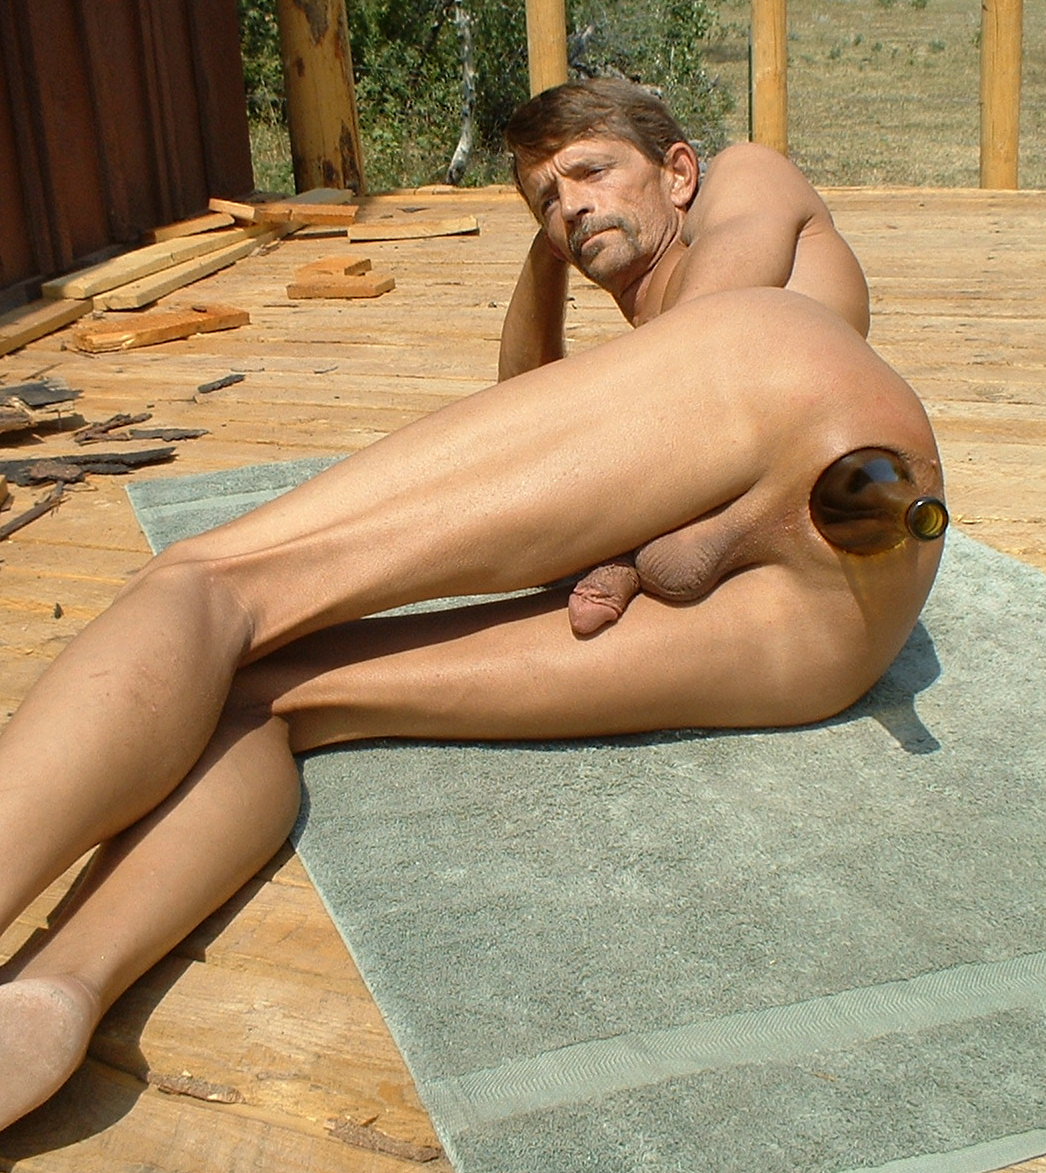 Extreme anal outdoors by hot latino gods 9